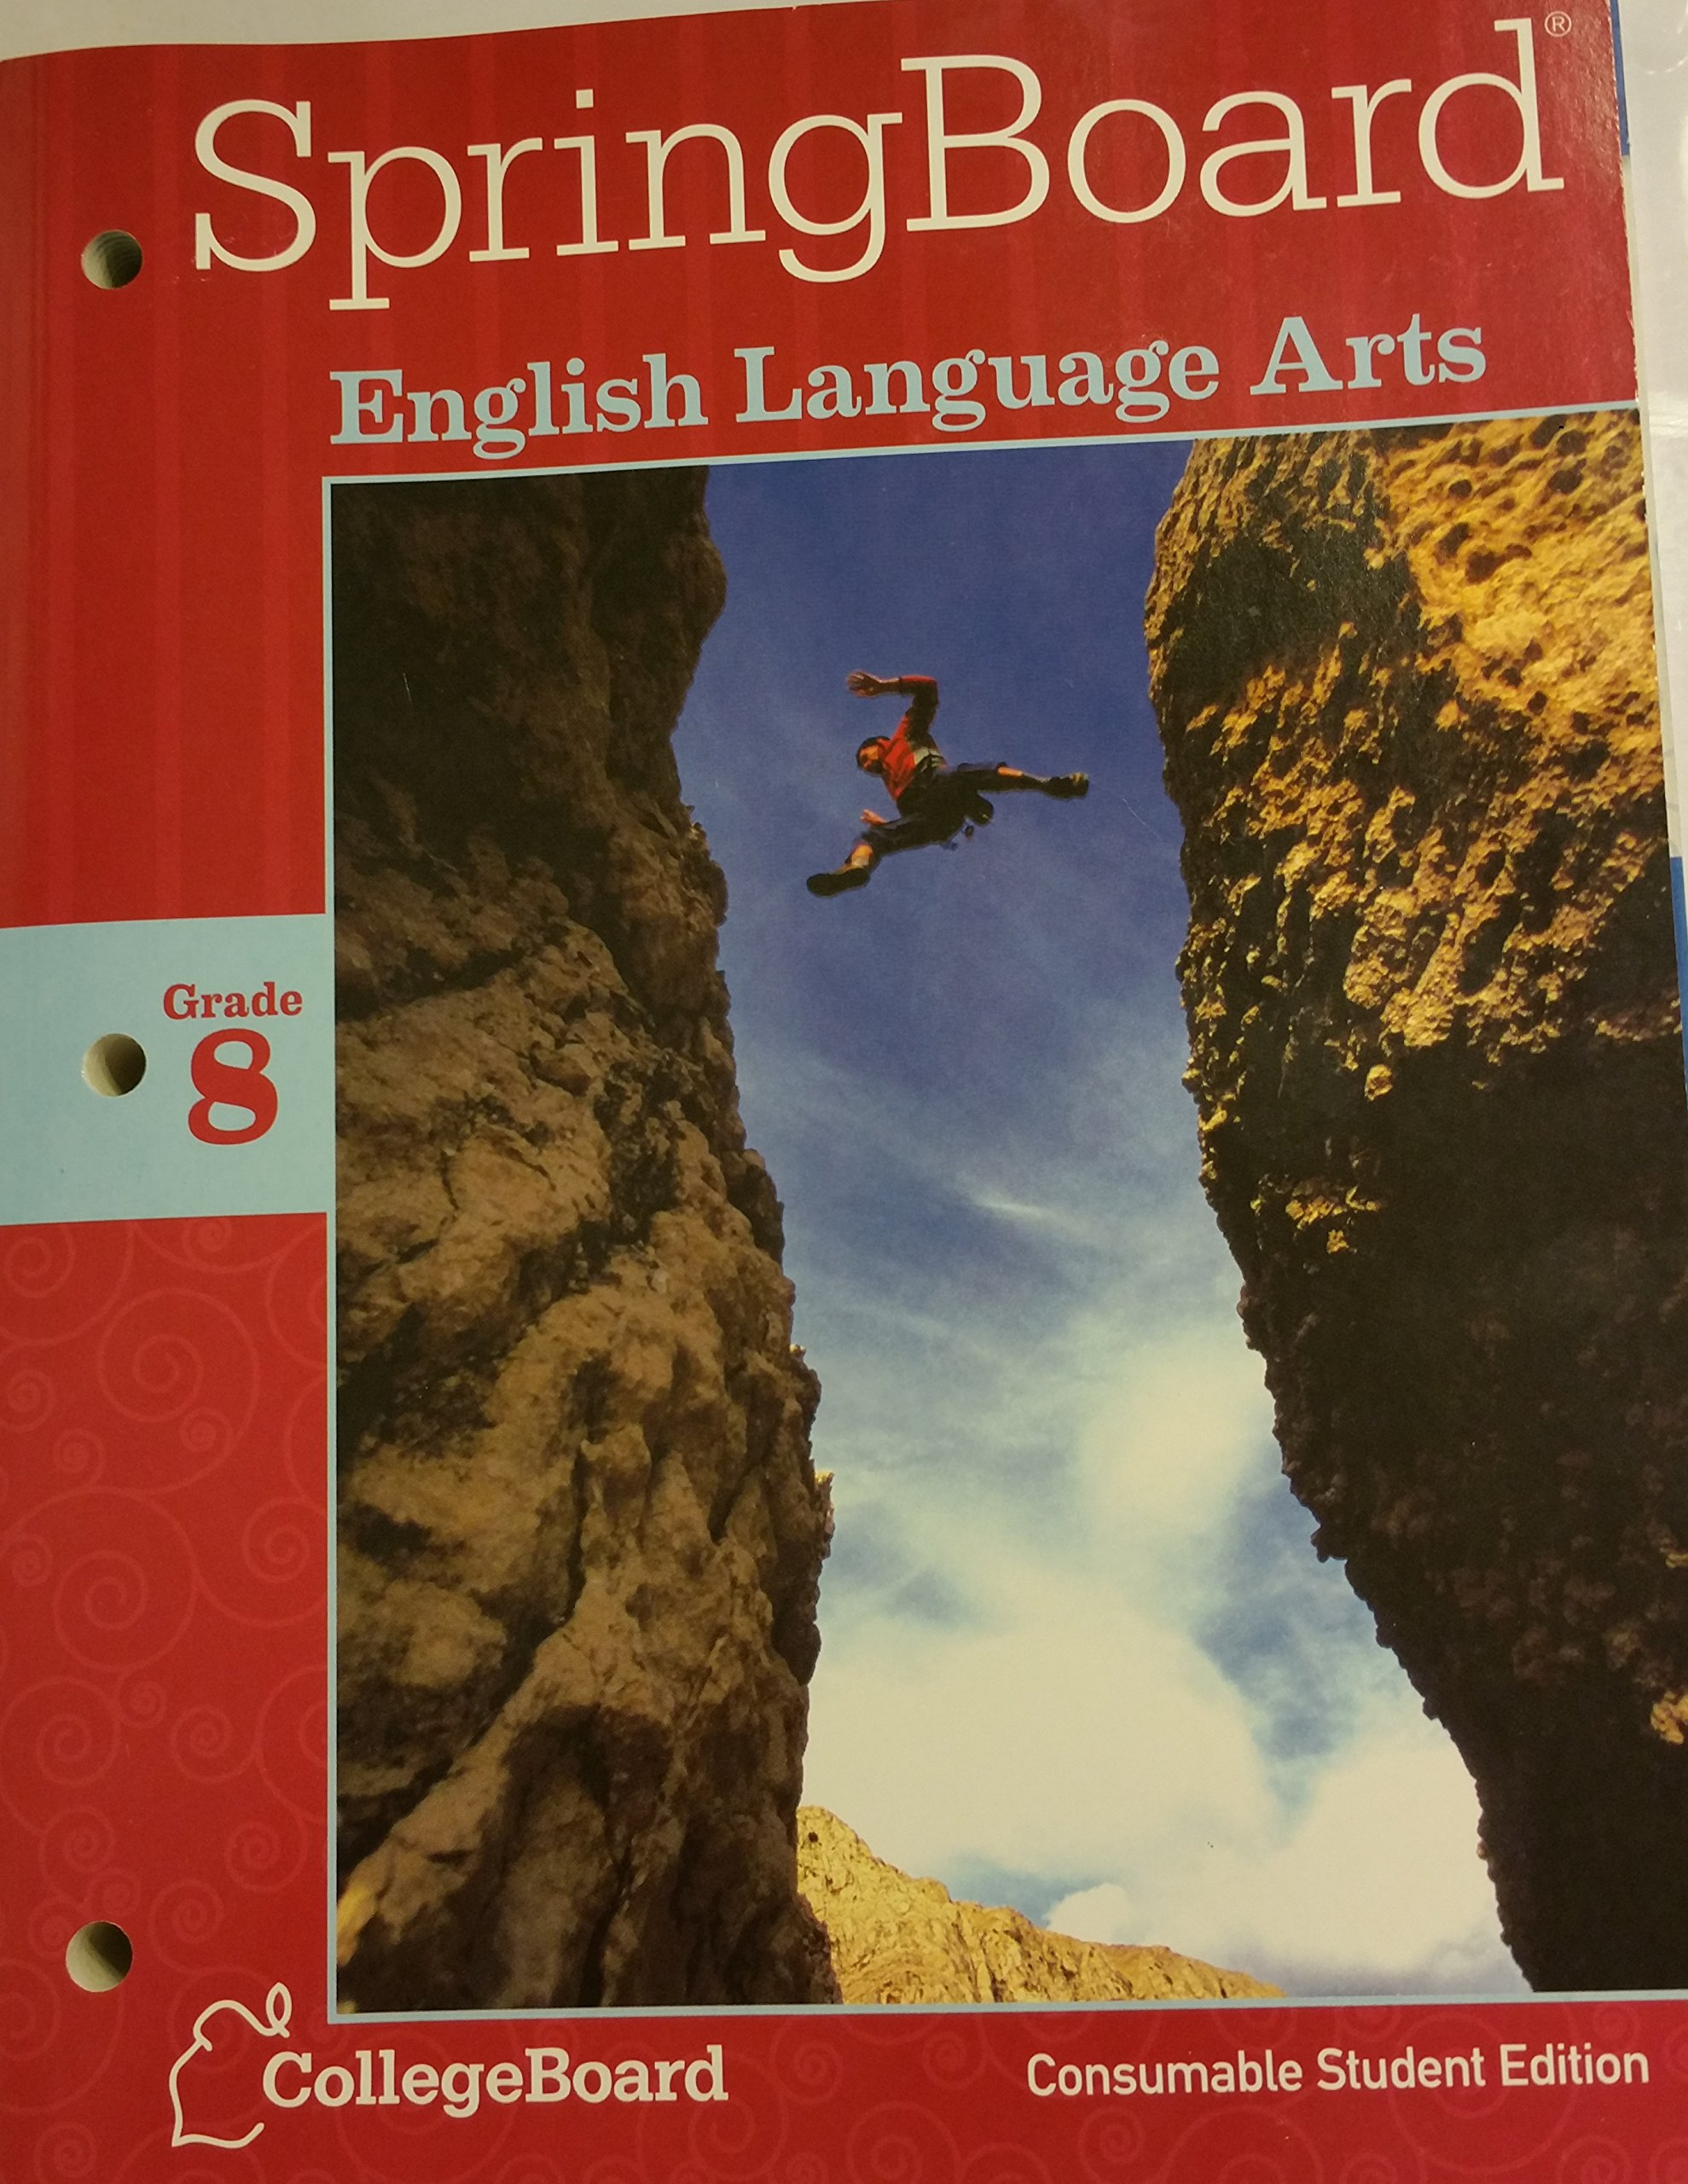 Springboard english language arts grade 8 college board springboard english language arts grade 8 college board 9781457302206 amazon books fandeluxe Choice Image